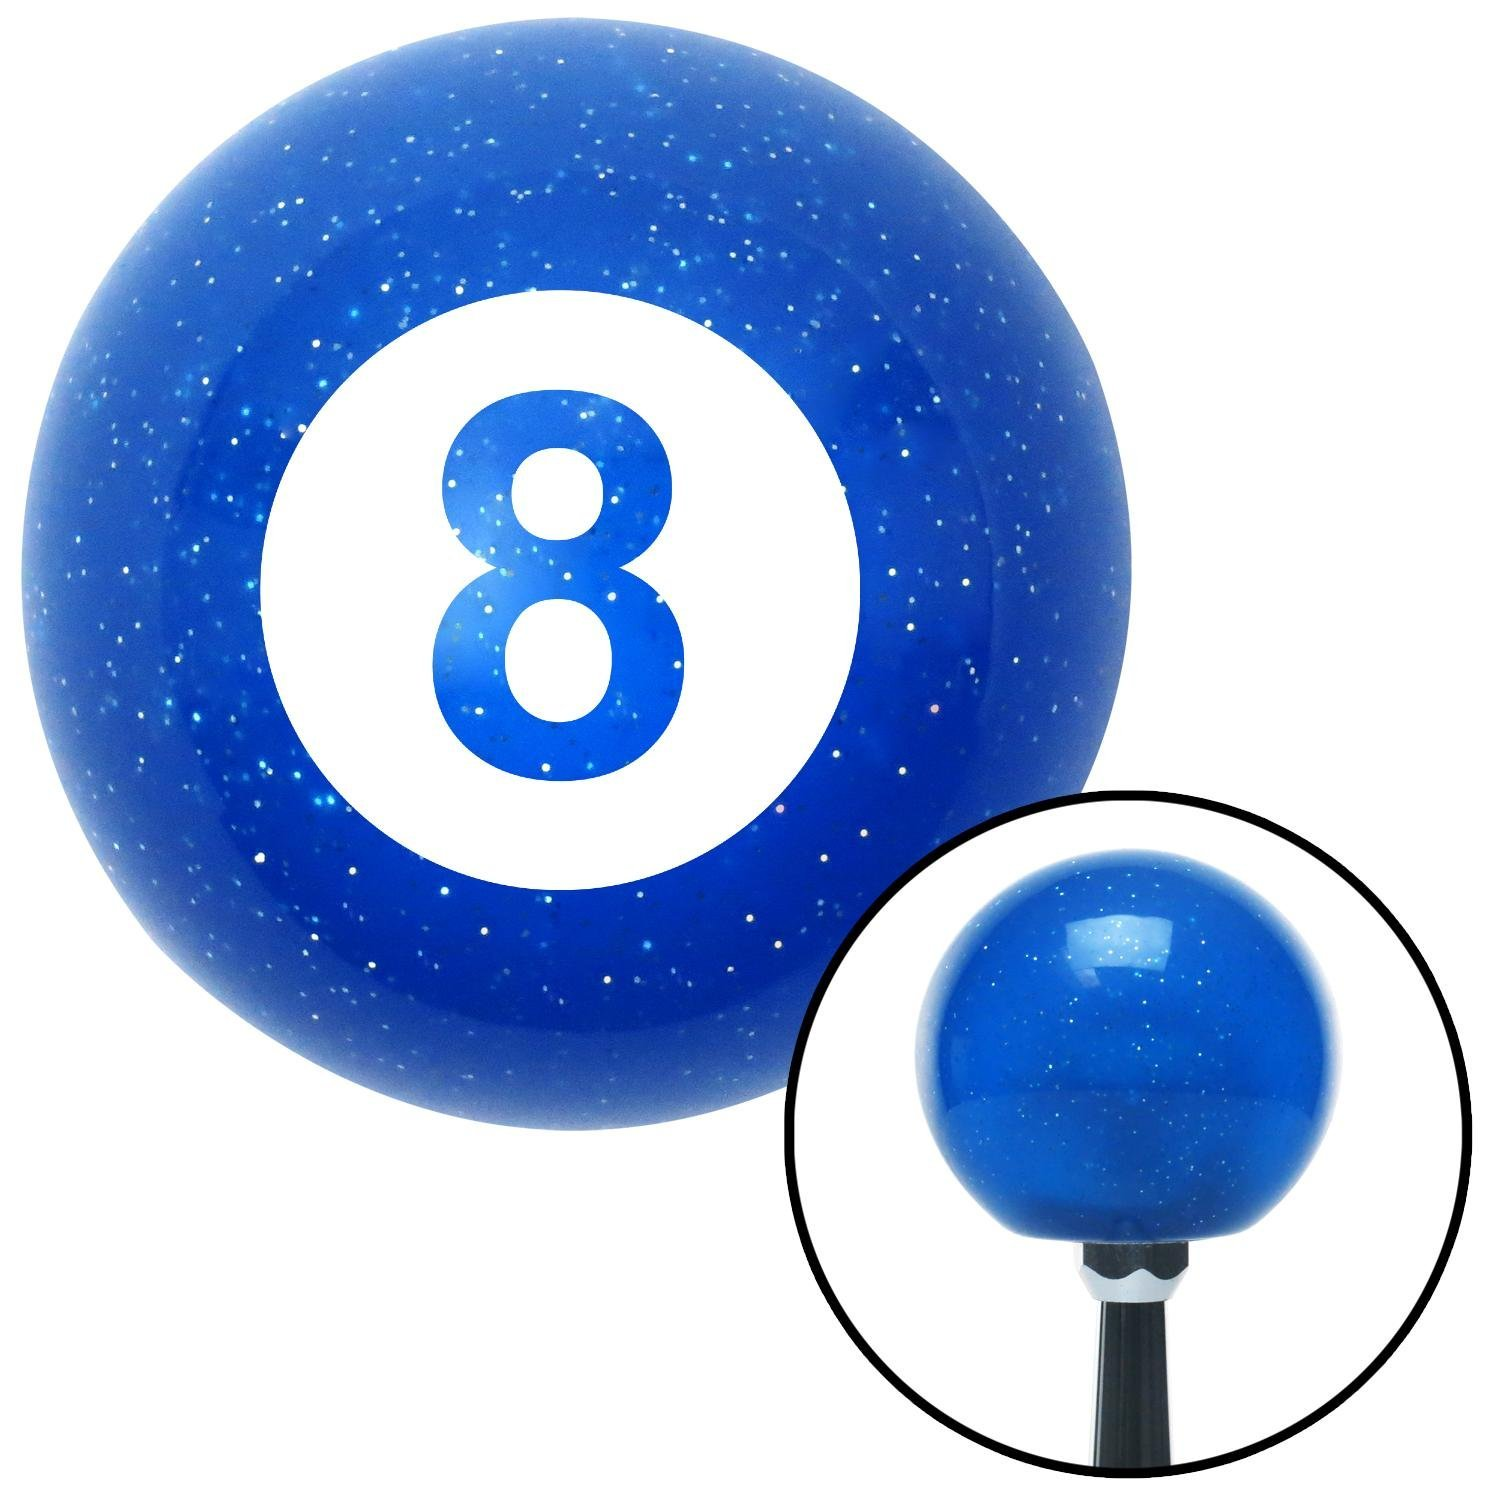 White 8 Ball American Shifter 20390 Blue Metal Flake Shift Knob with 16mm x 1.5 Insert